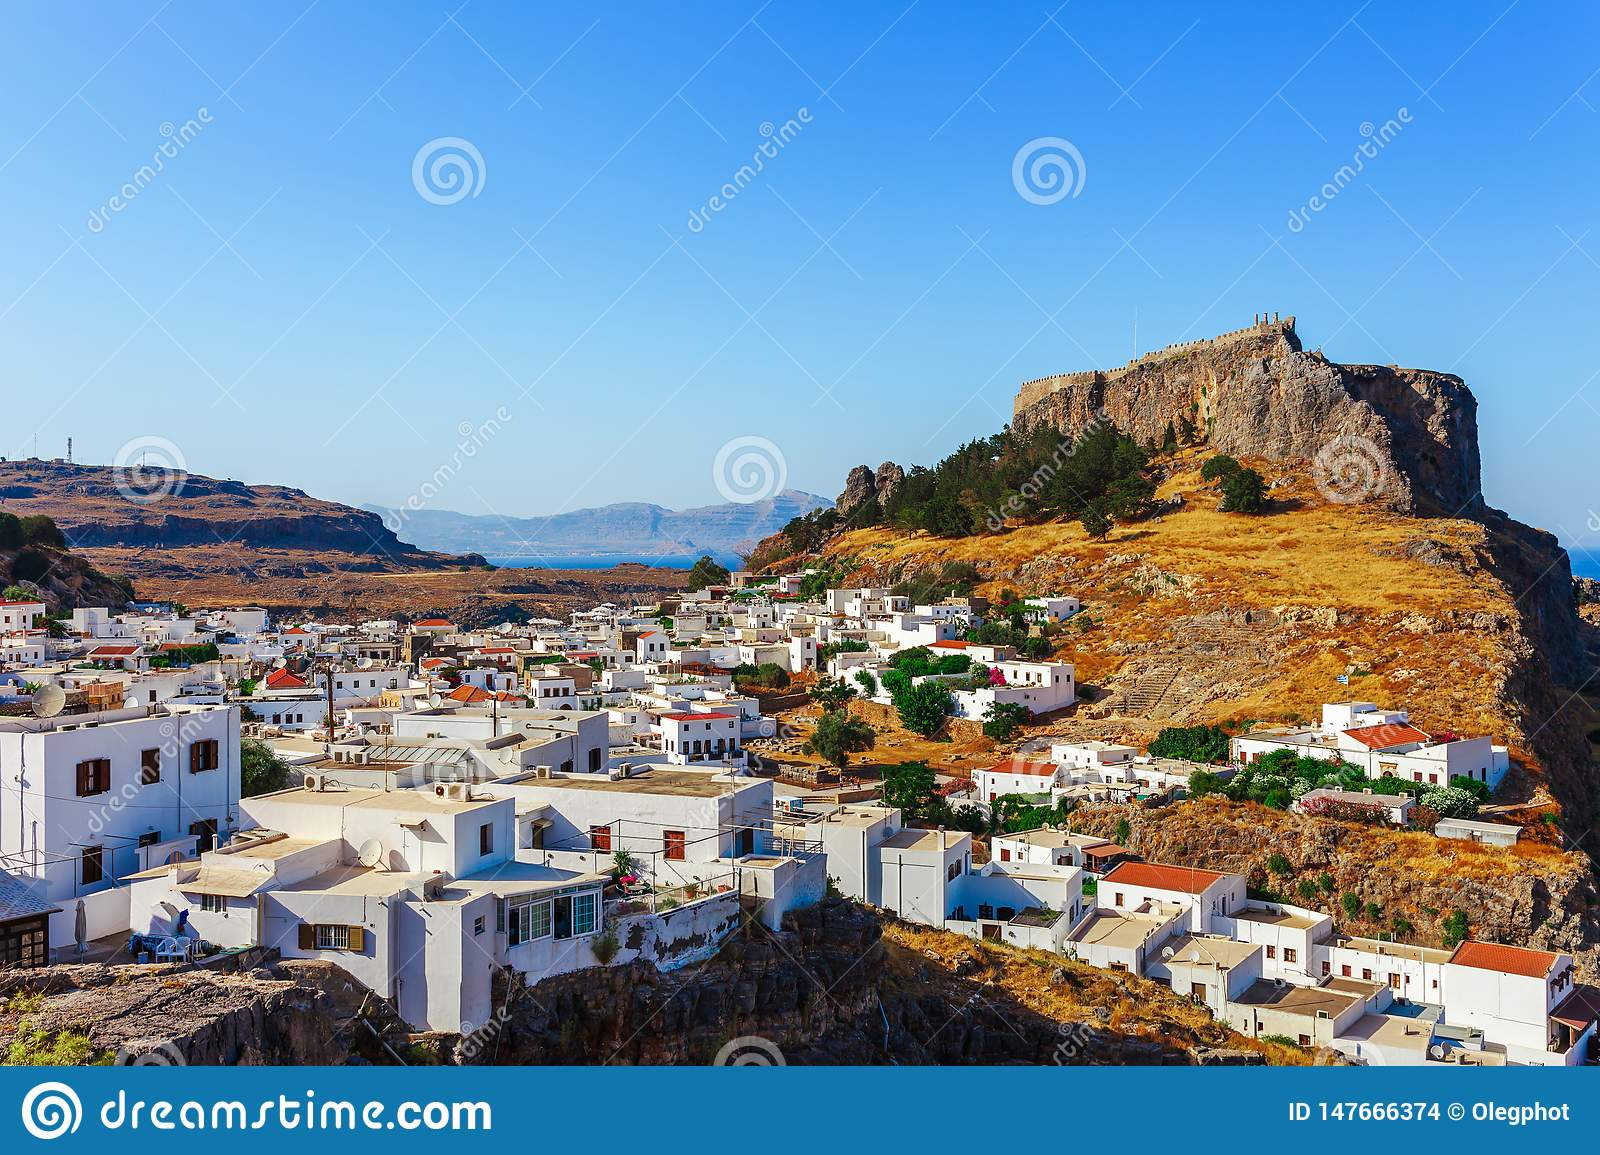 Skyview landscape photo Lindos town and ancient castle on Rhodes island, Dodecanese, Greece. Panorama with mountains and sea.